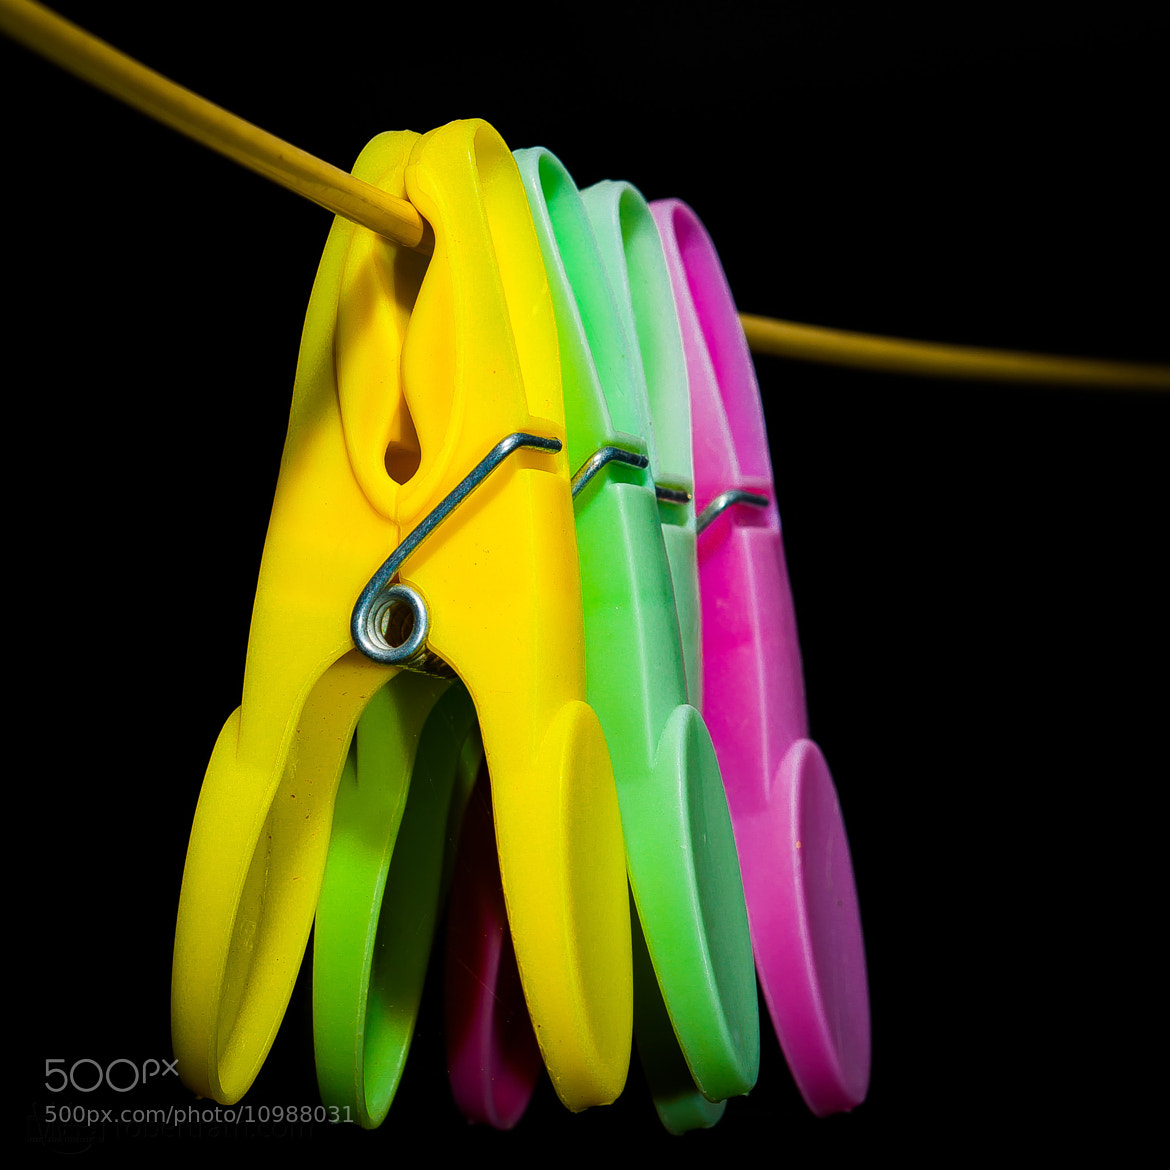 Photograph 366 Days of 2012, Day 215 - Pegged by Robert Rath on 500px